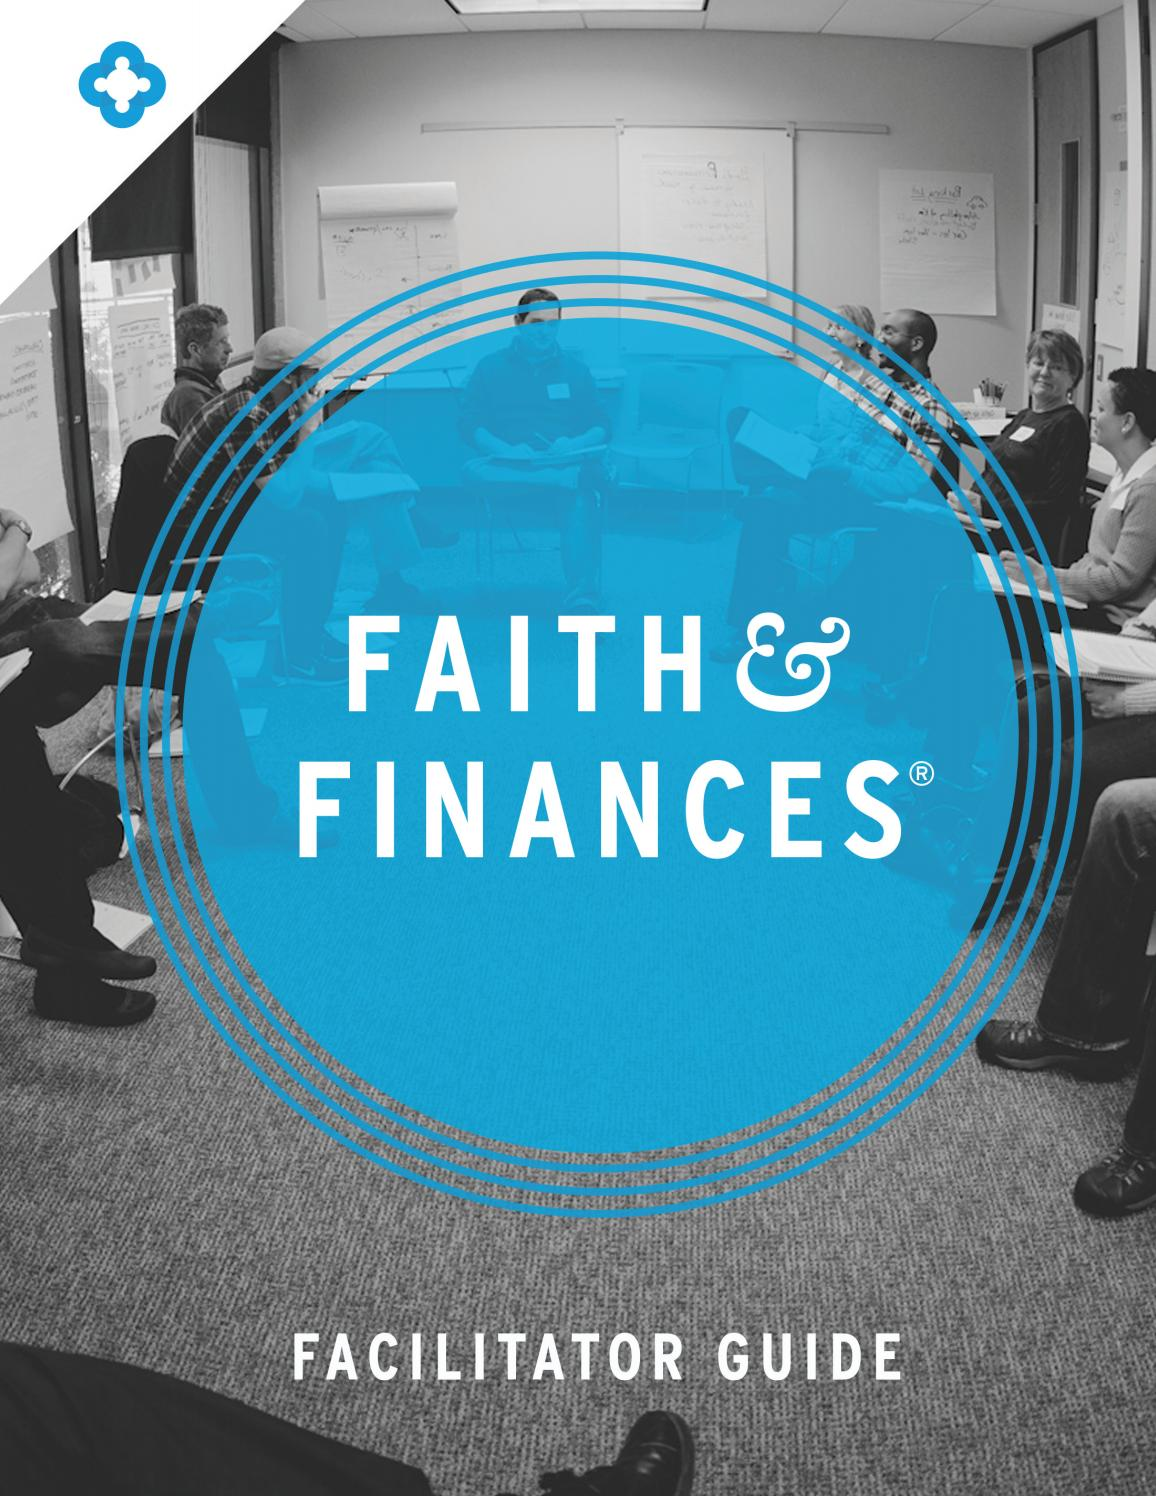 Faith & Finances Facilitator Guide by Chalmers Center - issuu